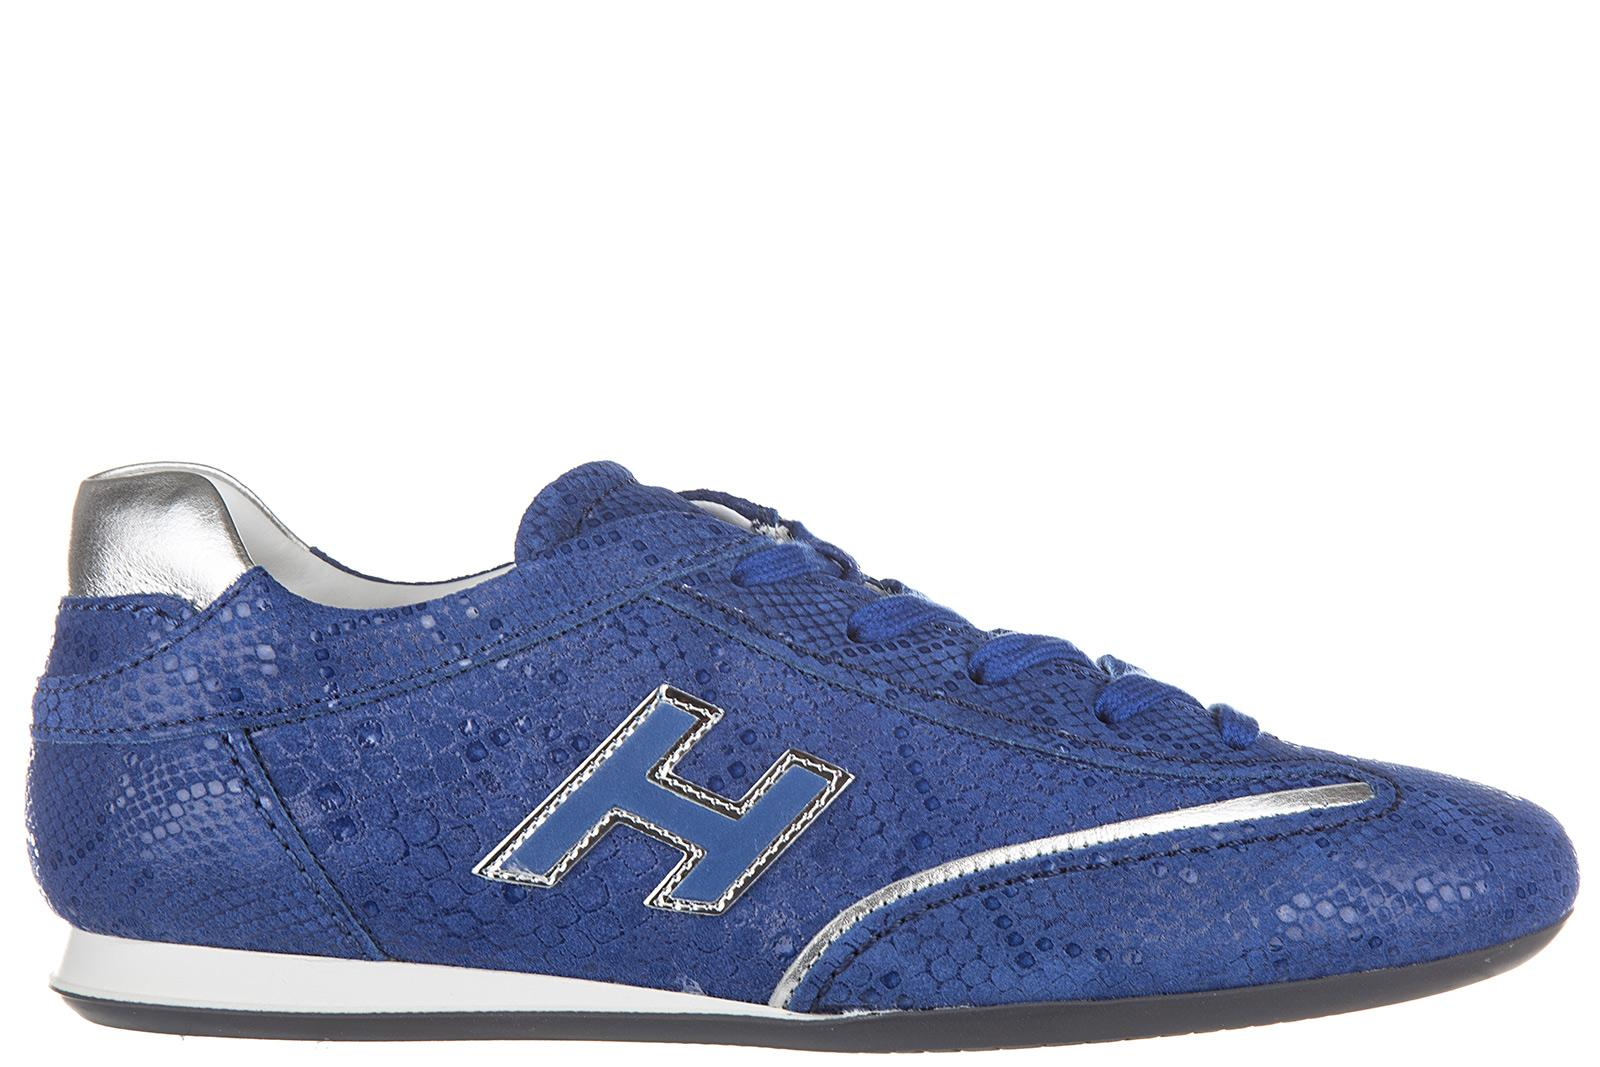 9a4d0c2534235 Hogan Women s Shoes Leather Trainers Sneakers Olympia H Flock In Blue